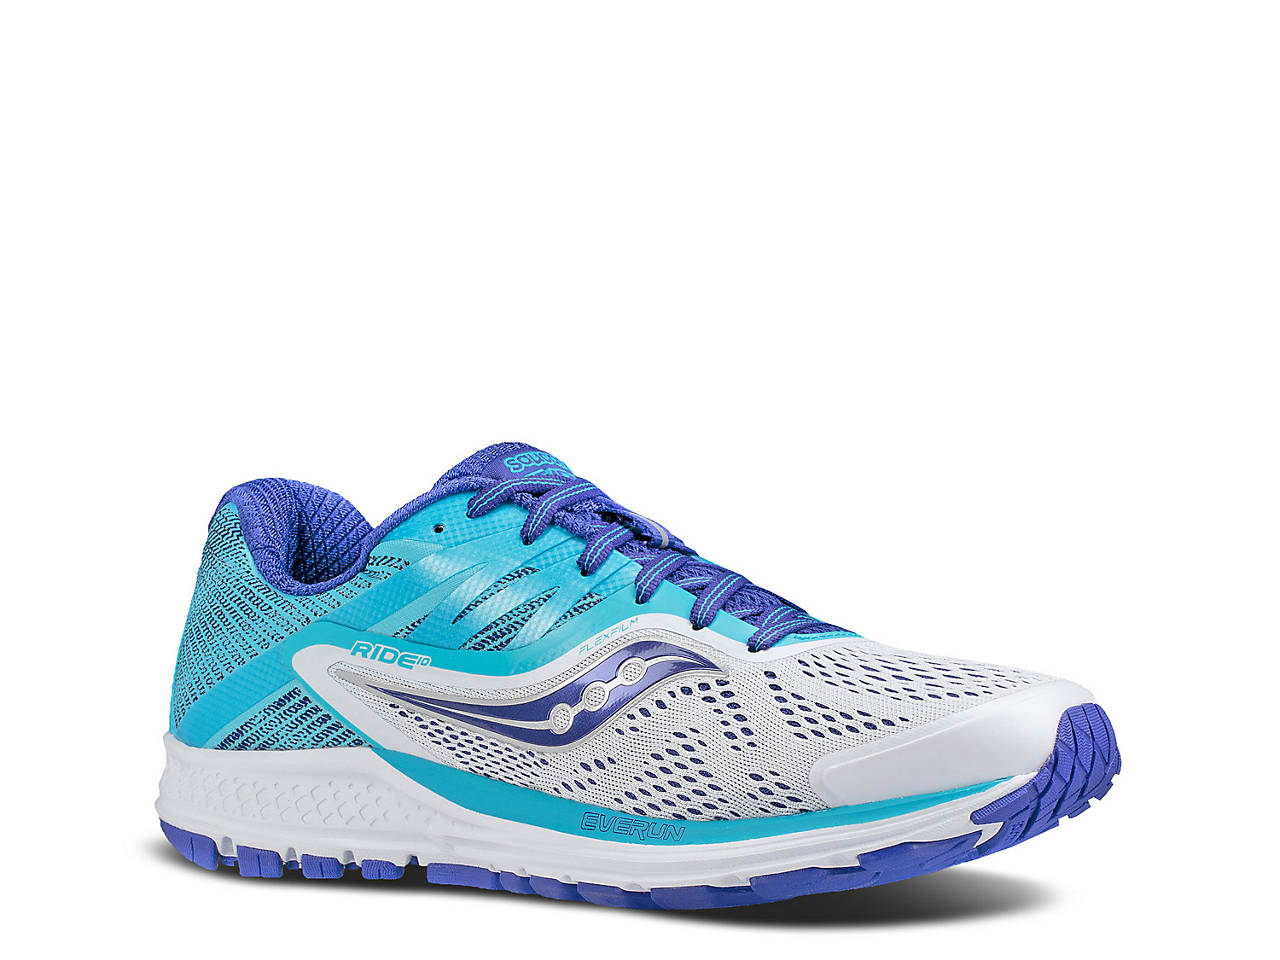 4fb7026febfc Saucony Ride 10 Performance Running Shoe - Women s Women s Shoes